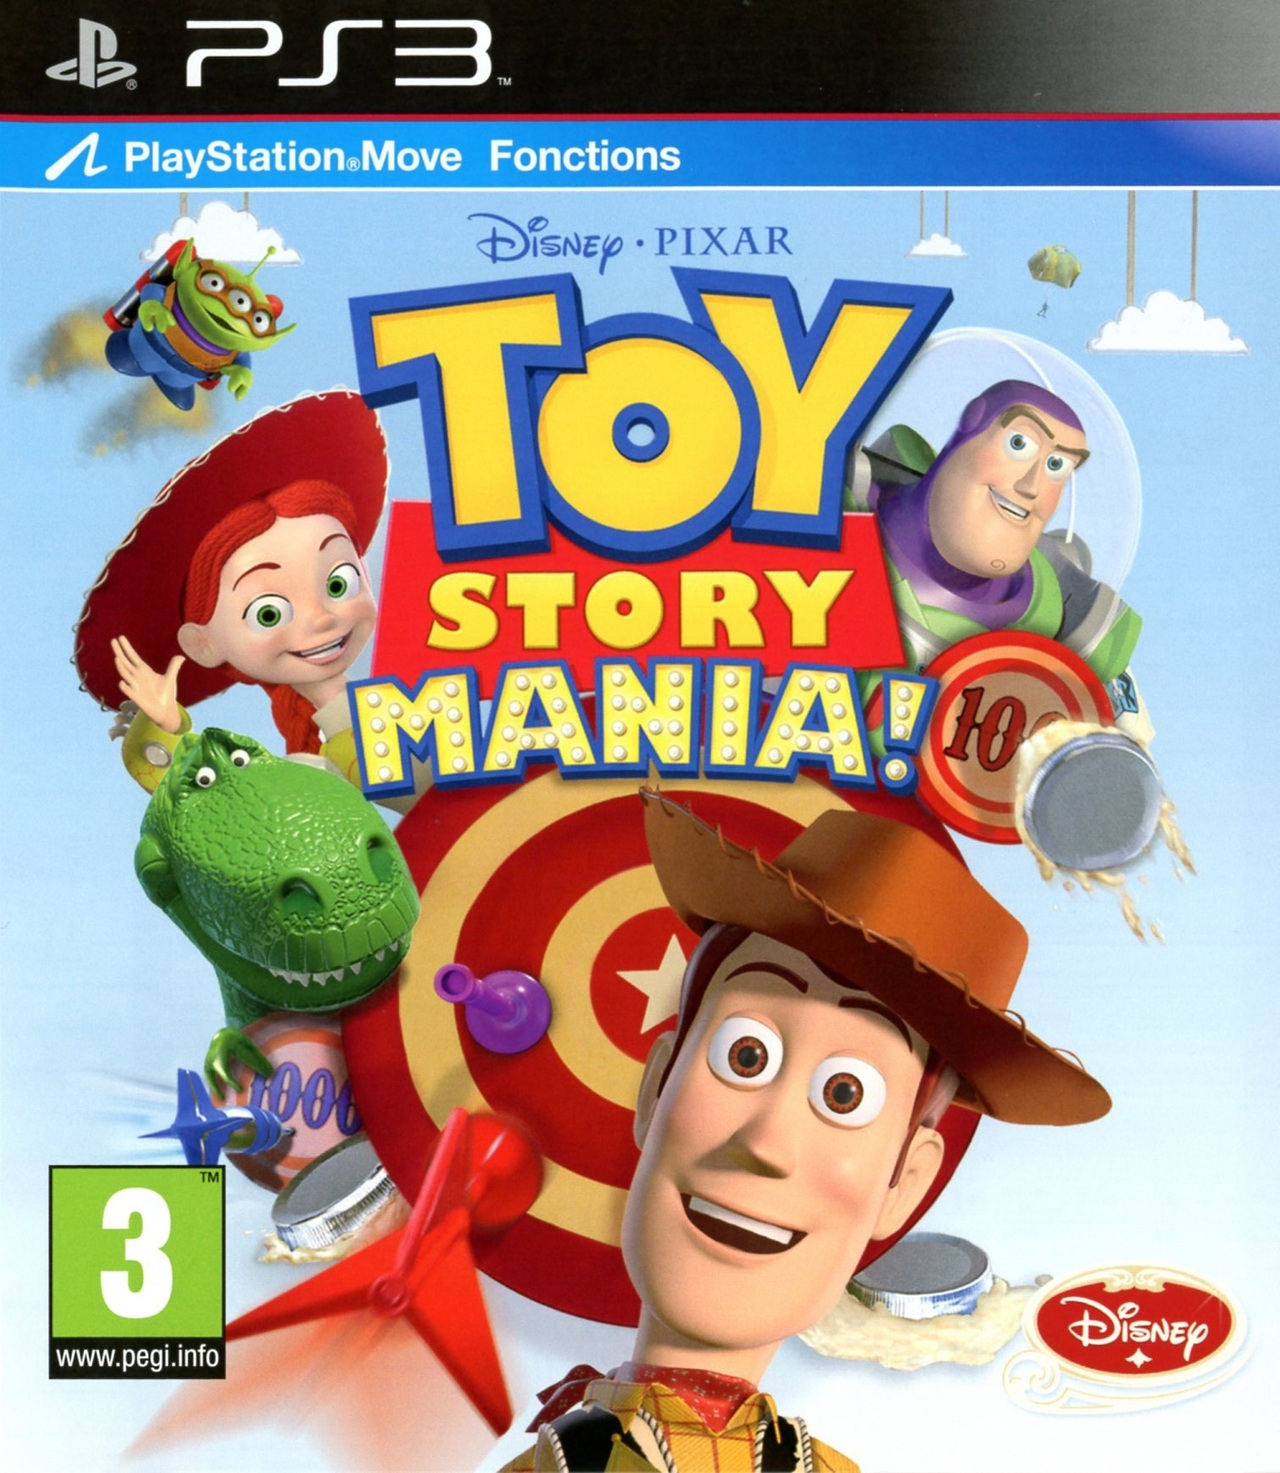 Toy Story Mania! Move (PS3)